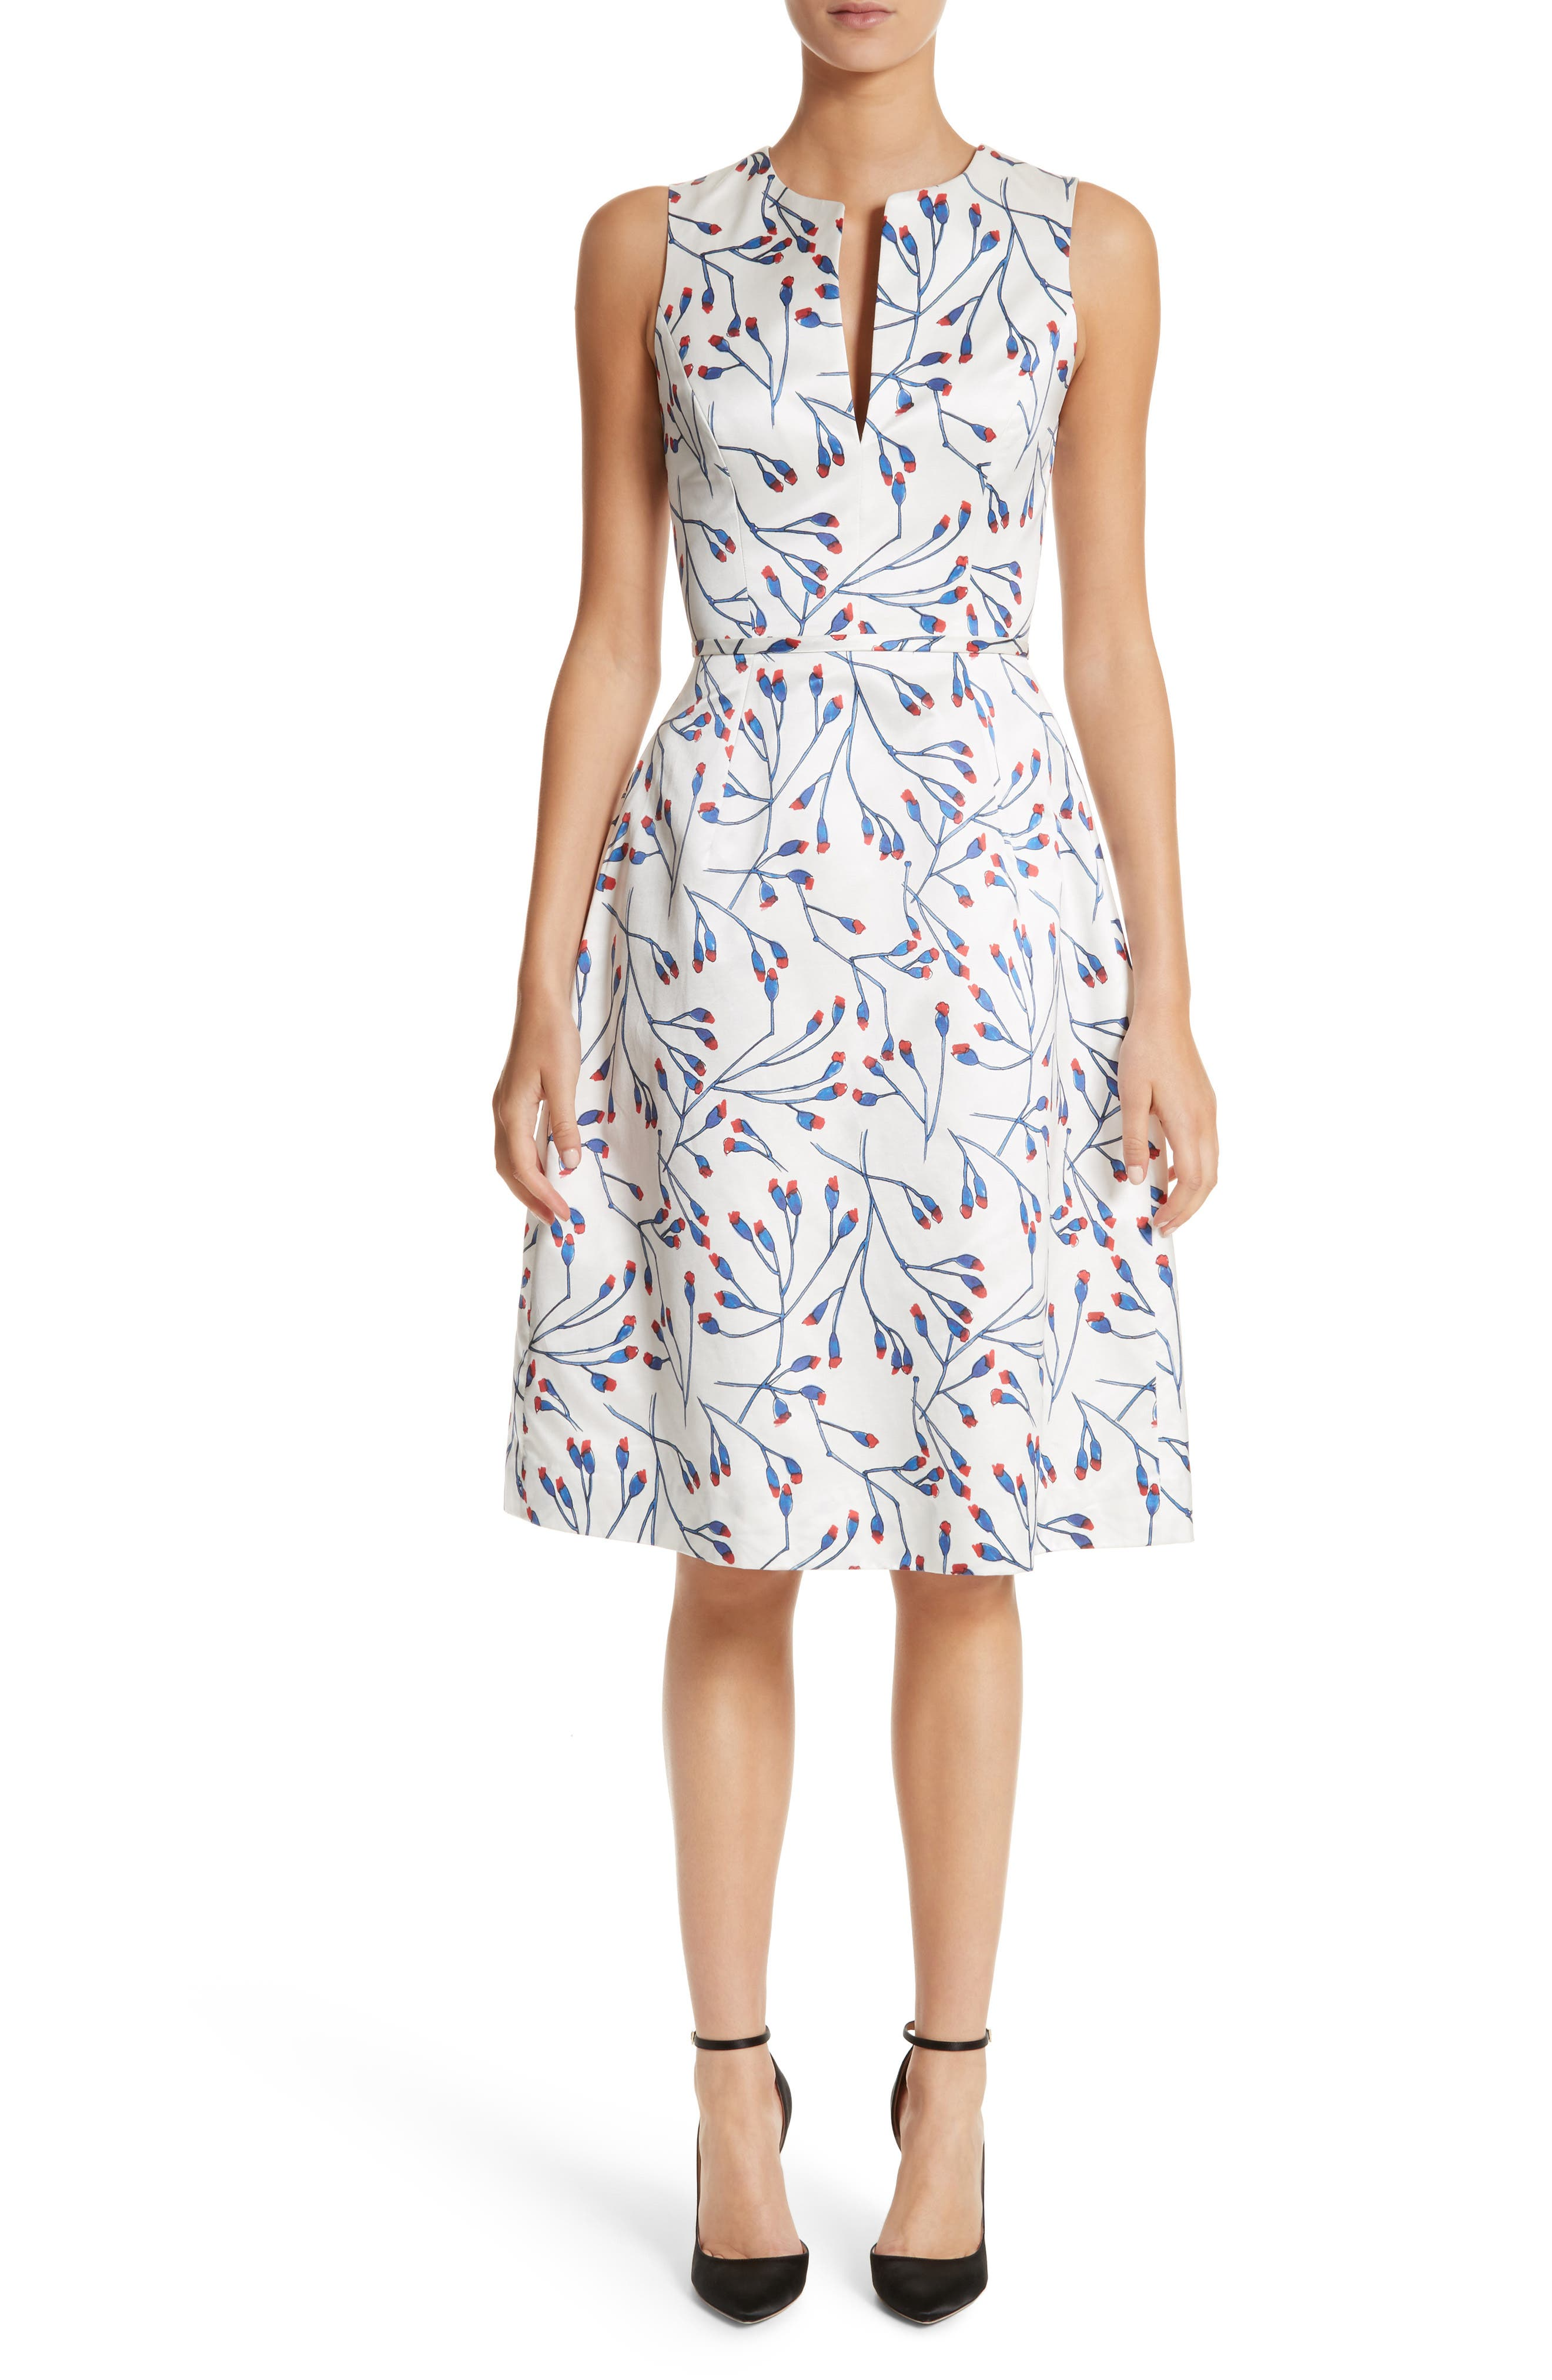 Carolina Herrera Floral Split Neck Fit & Flare Dress